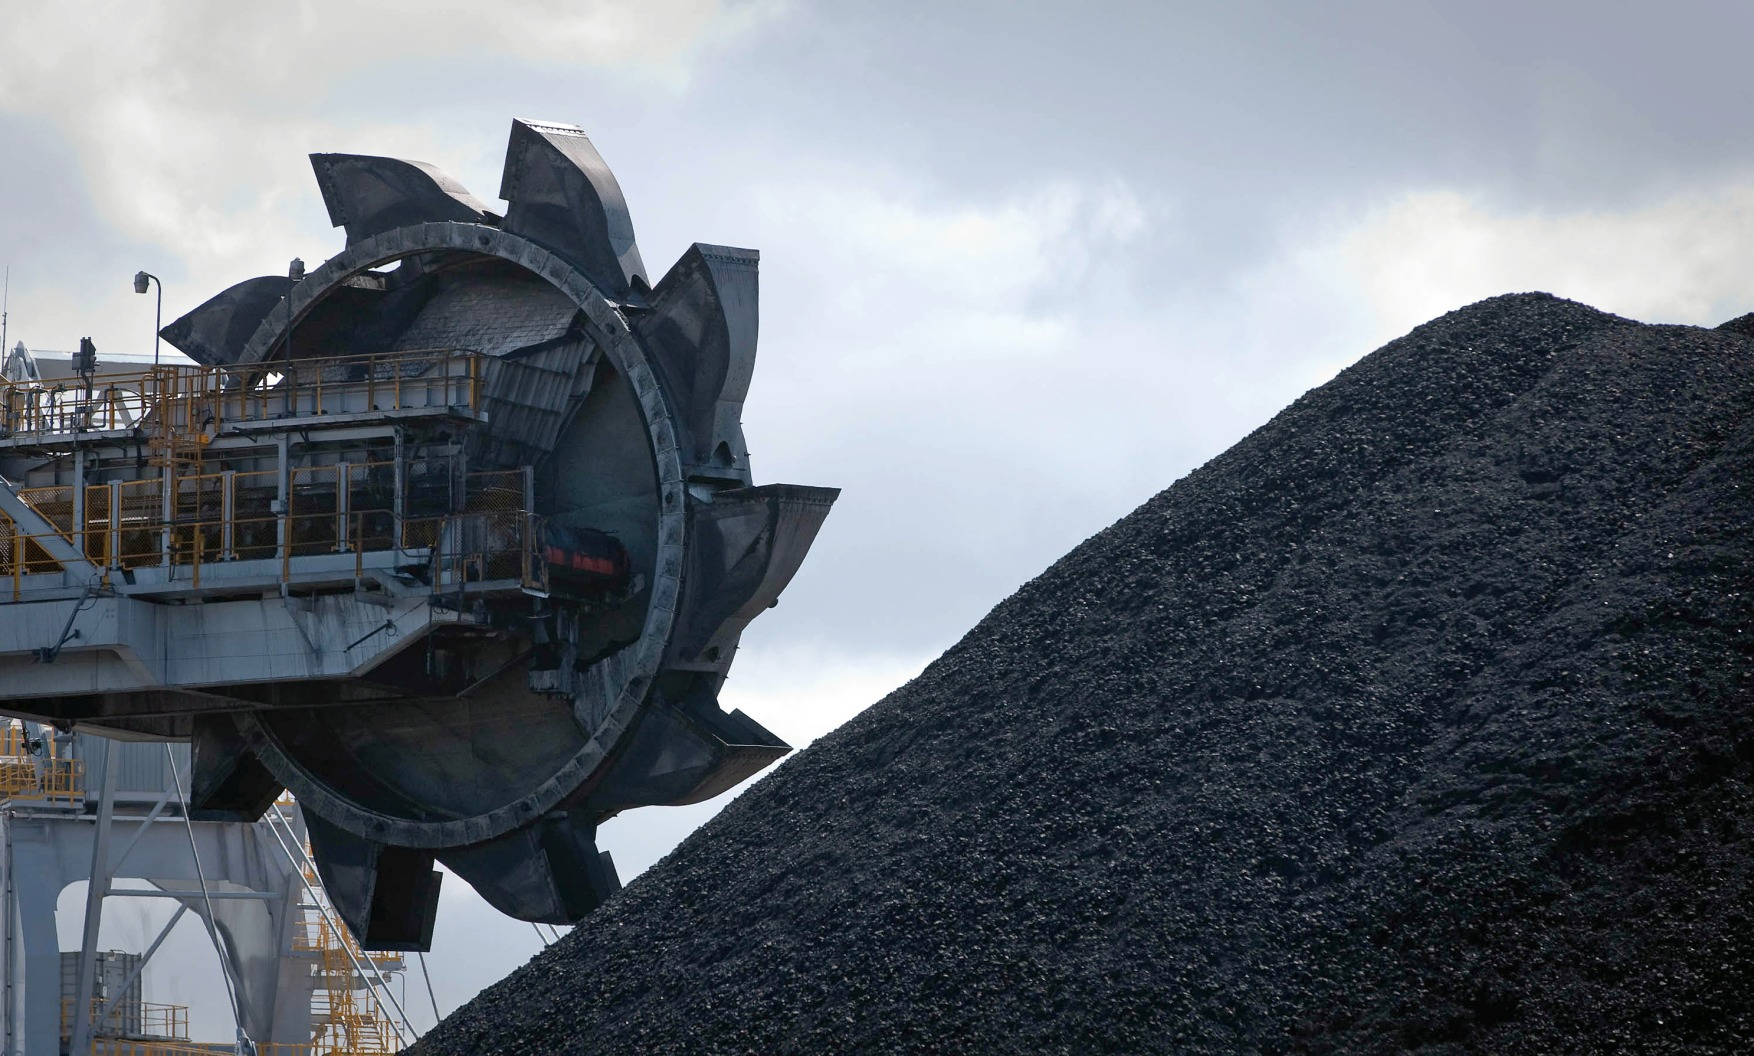 bloomberg.com - David Stringer - Top Miner BHP Sees an End to the Era of Coal